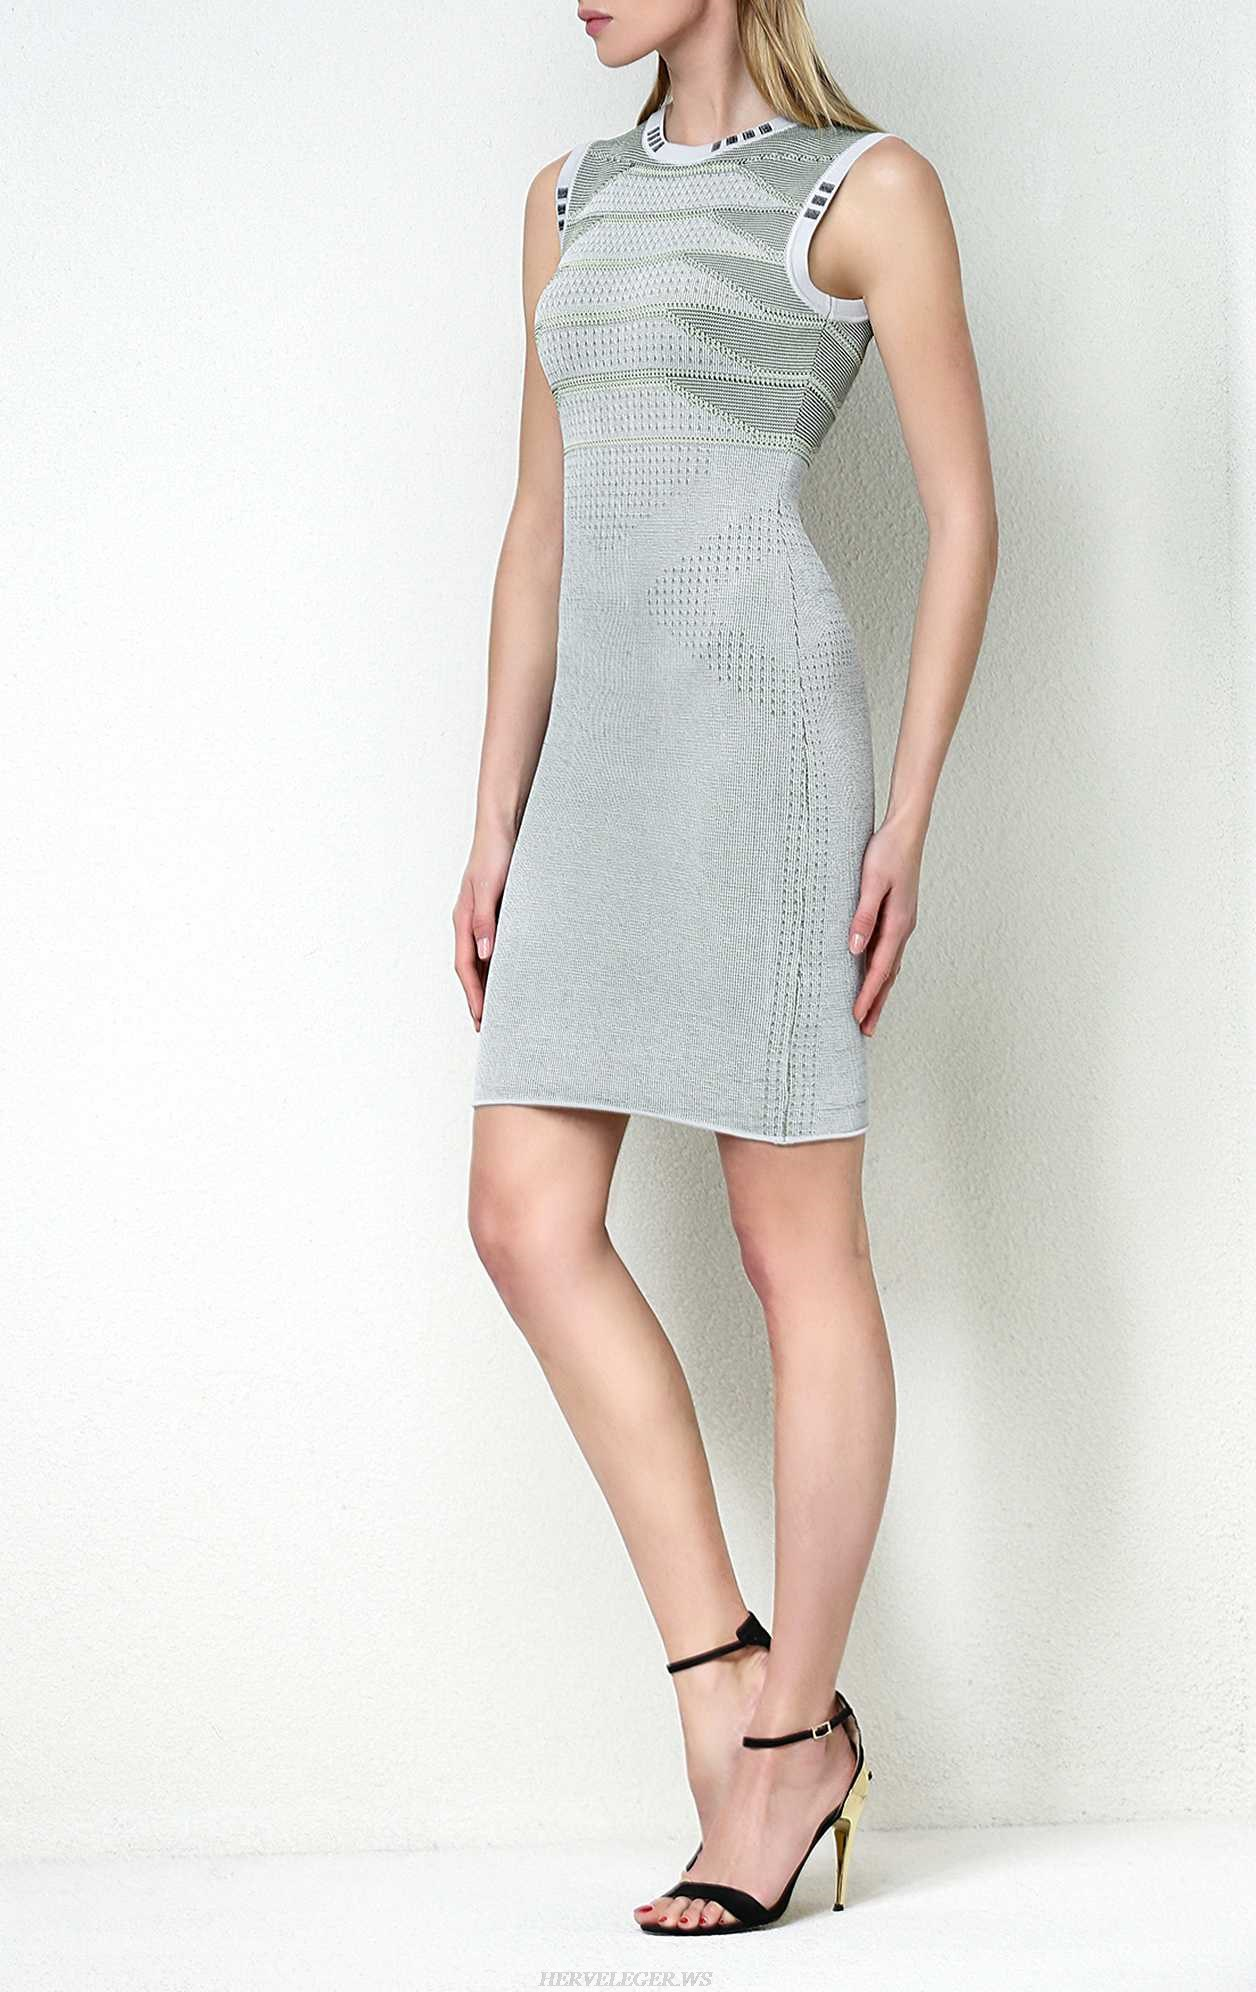 Herve Leger Mesh Paneled Knitted Dress